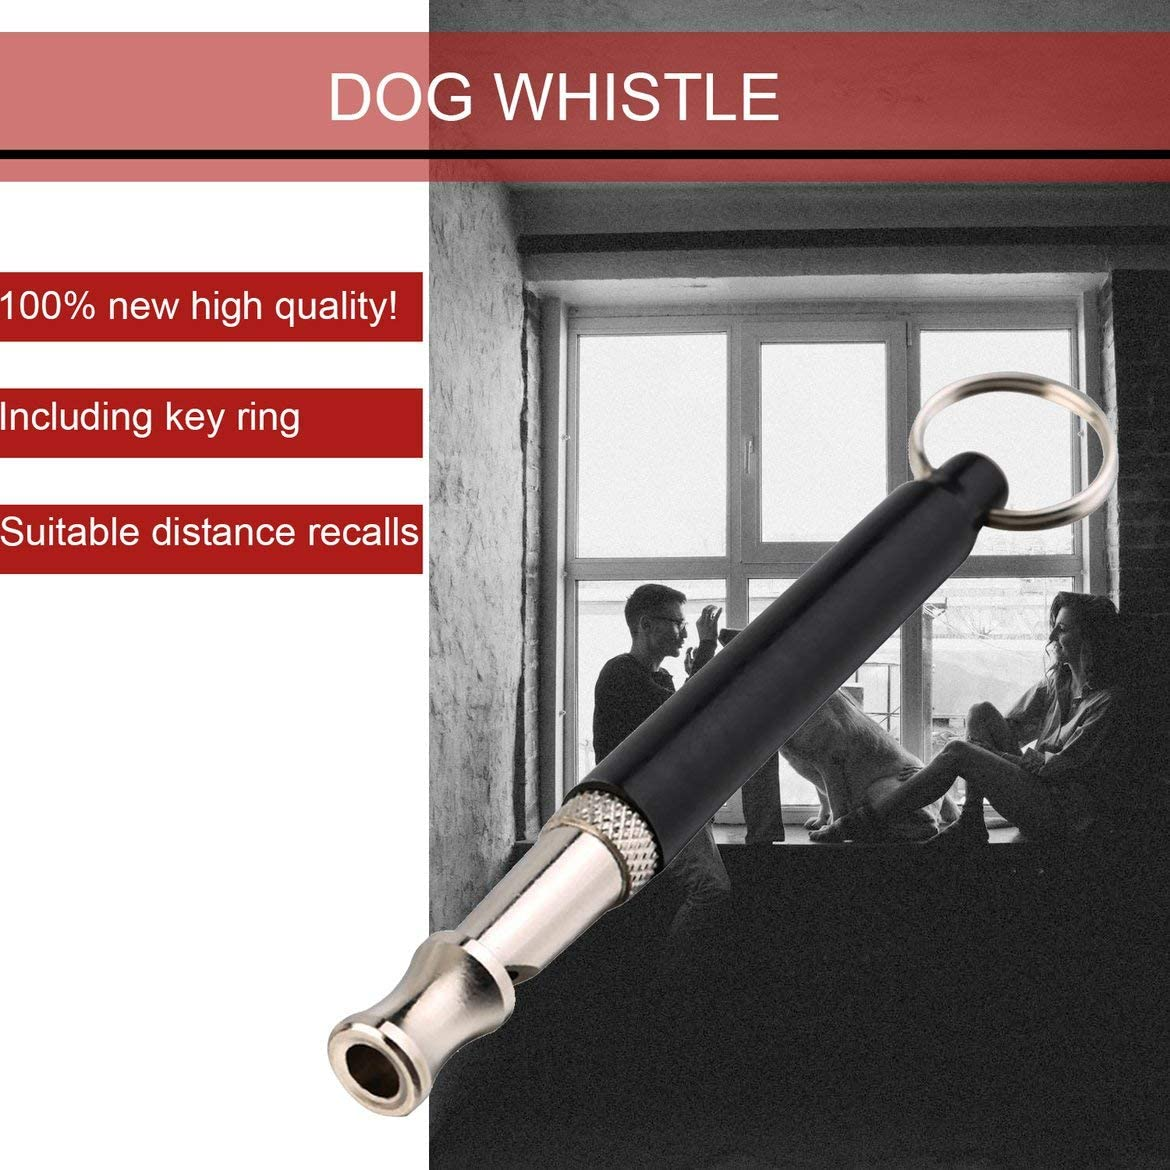 Pandamama Pet Tool New Pet Dog Training Whistle Obedience Supersonic Sound Pitch Ultra Sonic Quiet Discipline Metal Color//Black Key Ring Loop